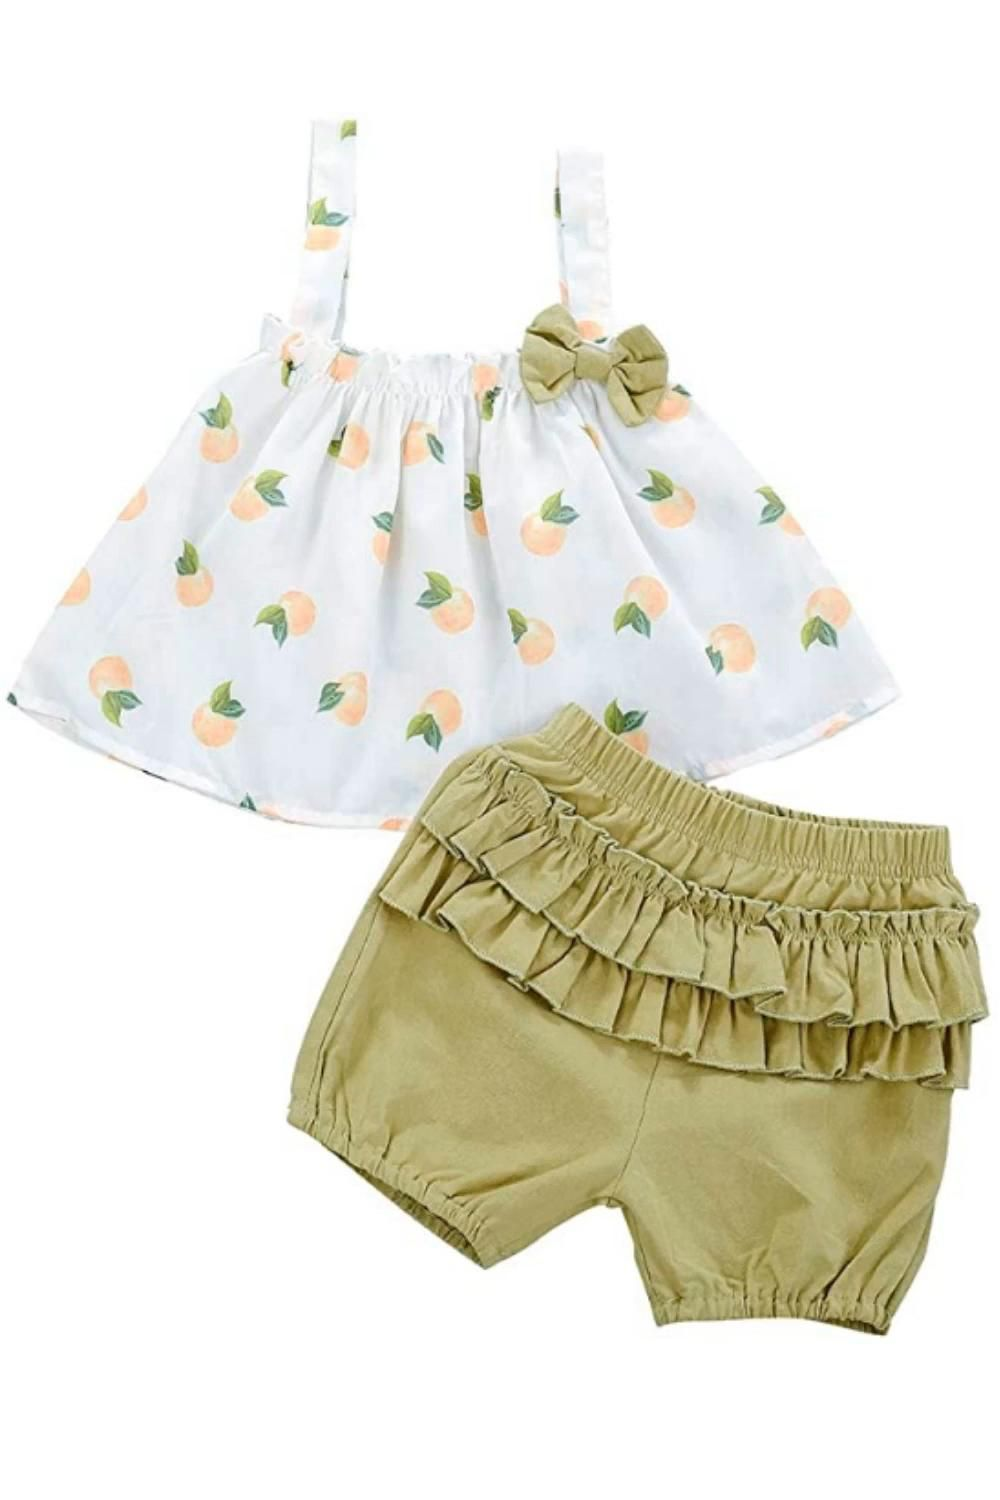 Toddler Baby Girl Summer Outfits Strap Sleeveless